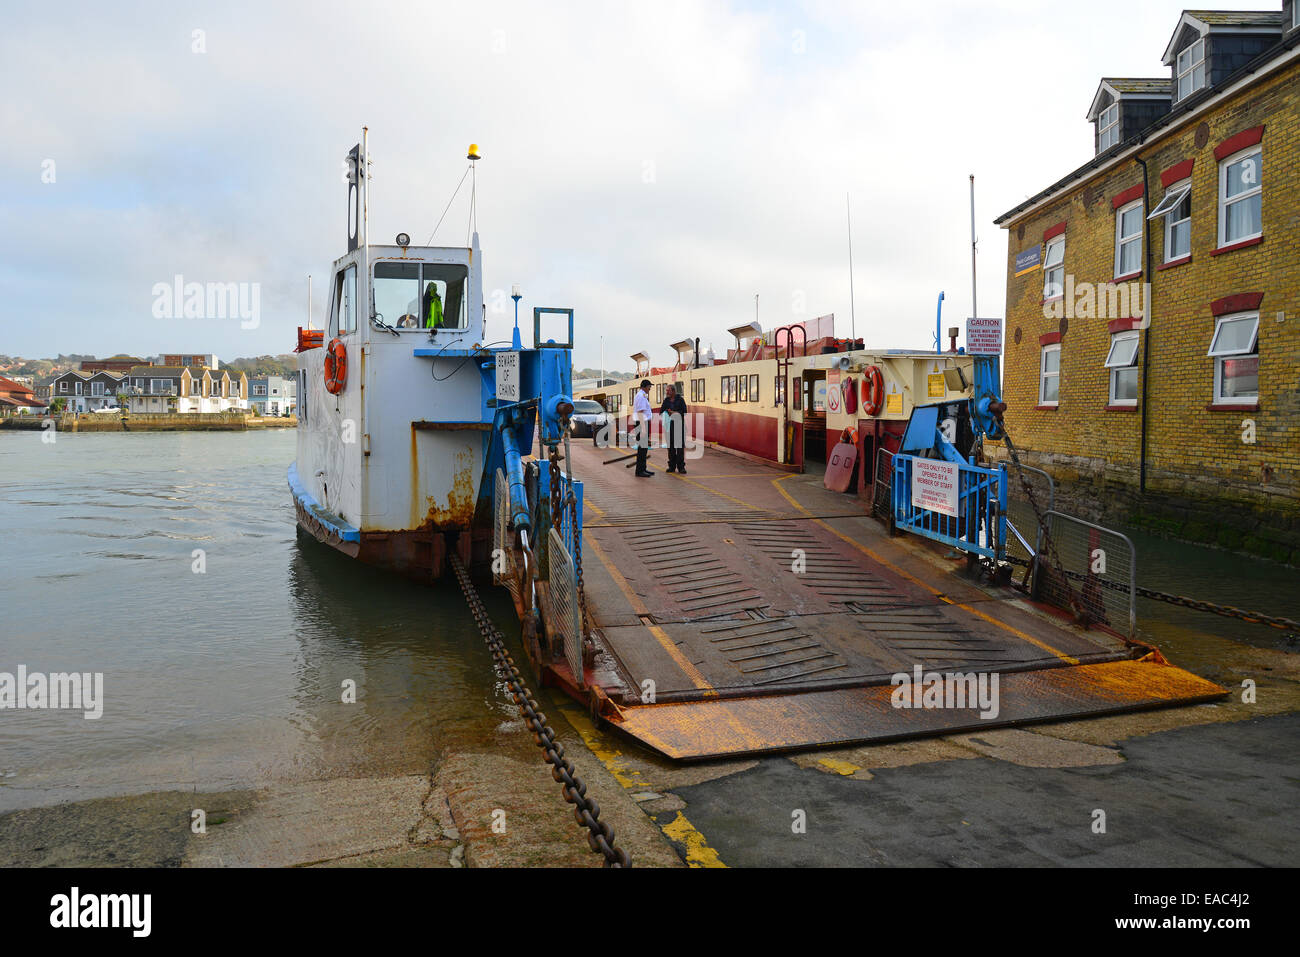 Chain ferry on River Medina, Cowes, Isle of Wight, England, United Kingdom - Stock Image